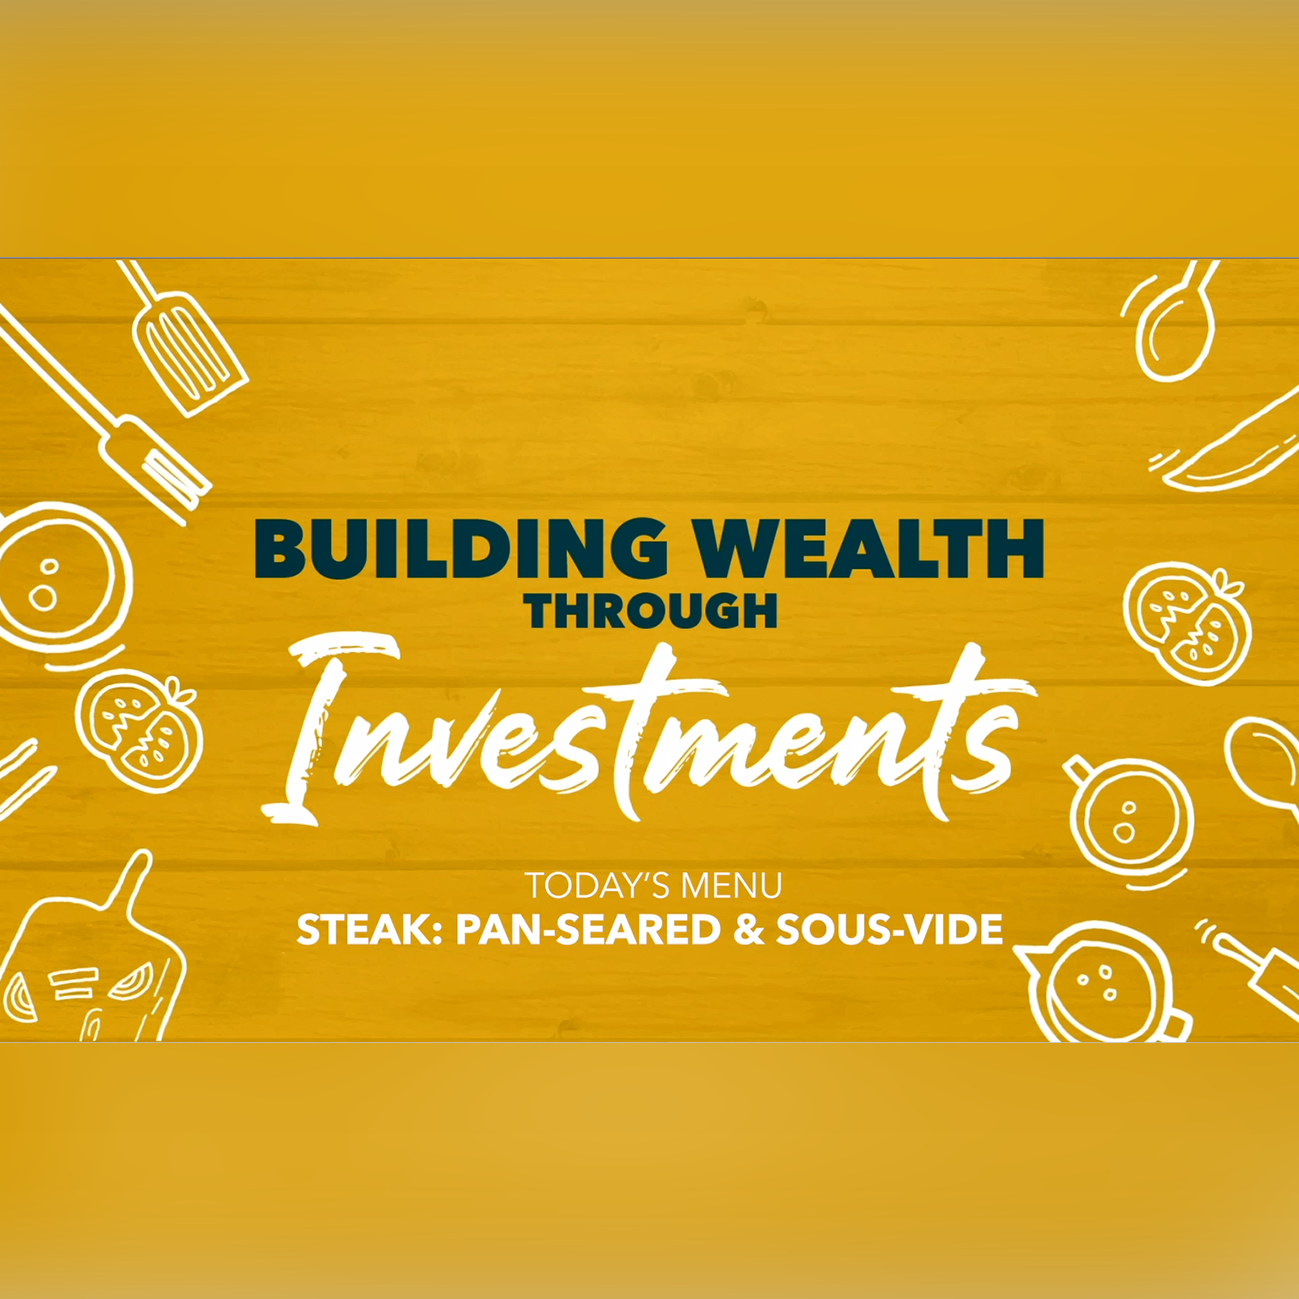 The steaks on investing the two way steaks